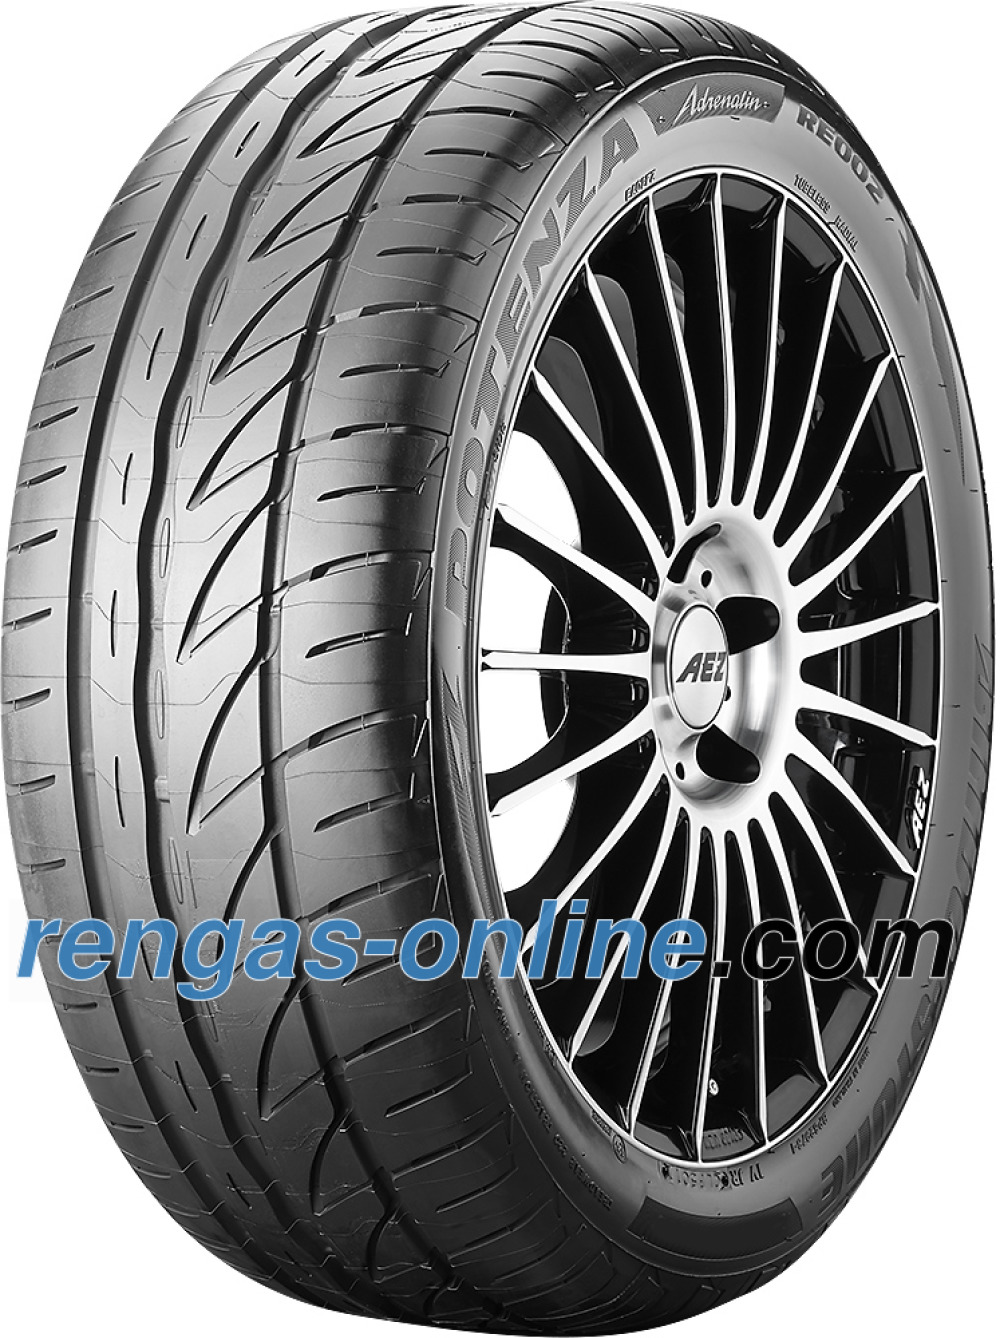 bridgestone-potenza-adrenalin-re002-23545-r17-94w